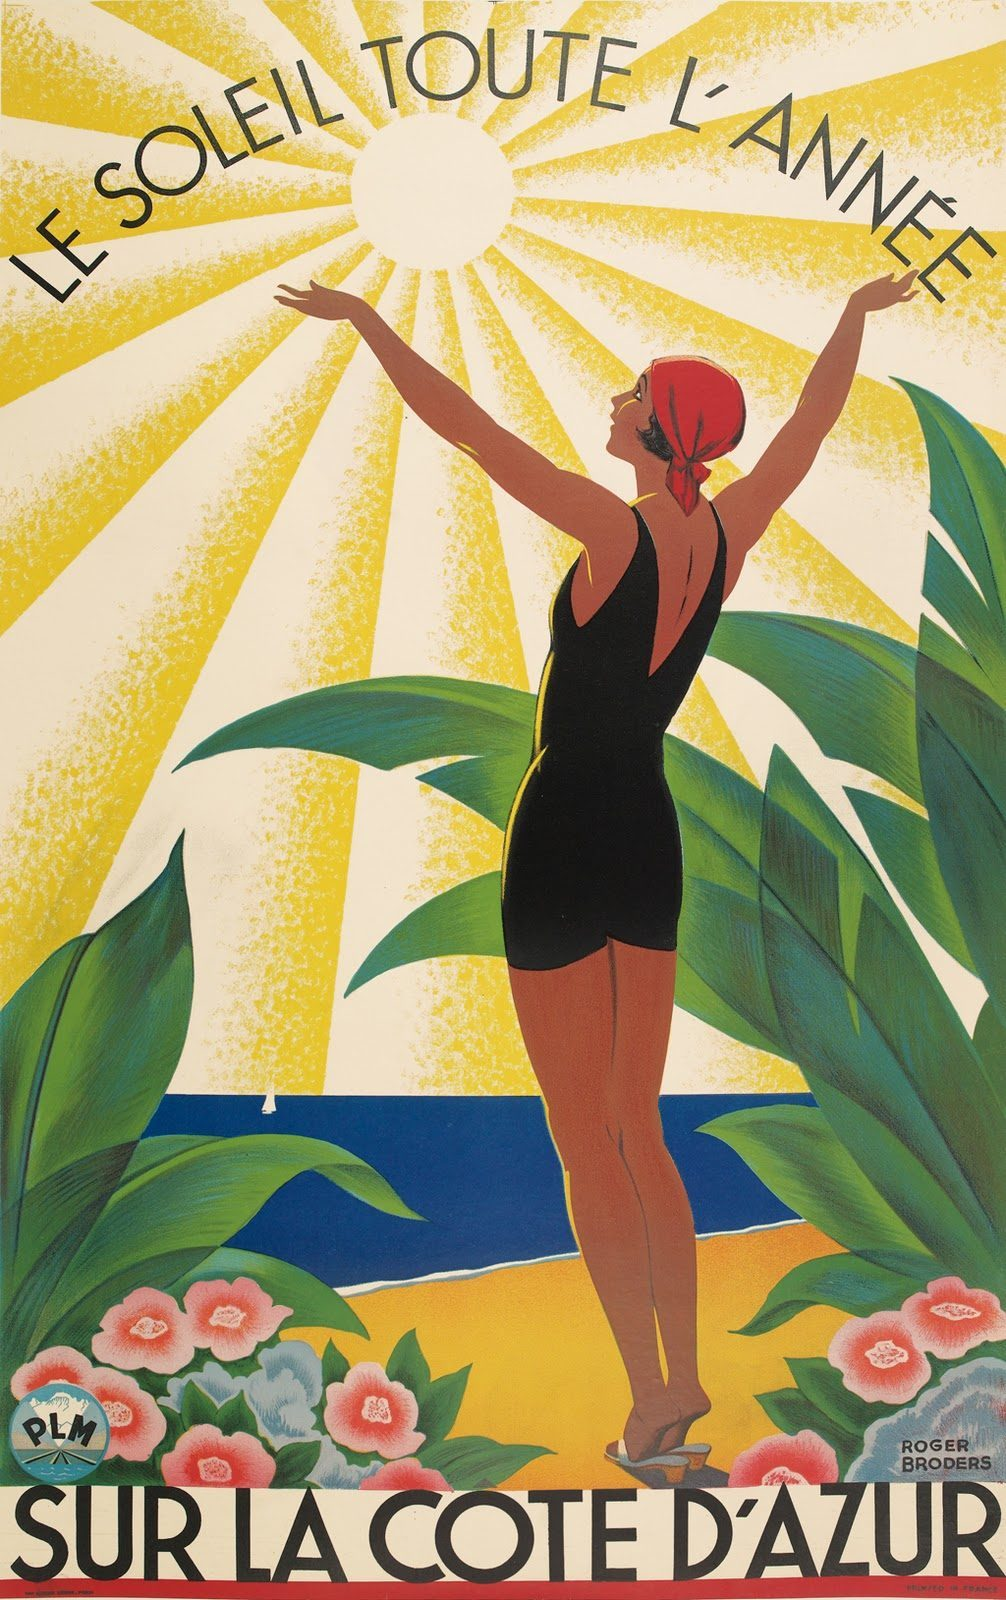 15 Beautiful French Art Deco Travel Posters By Roger Broders Flashbak Art Deco Posters Art Deco Artwork Travel Posters Art Deco